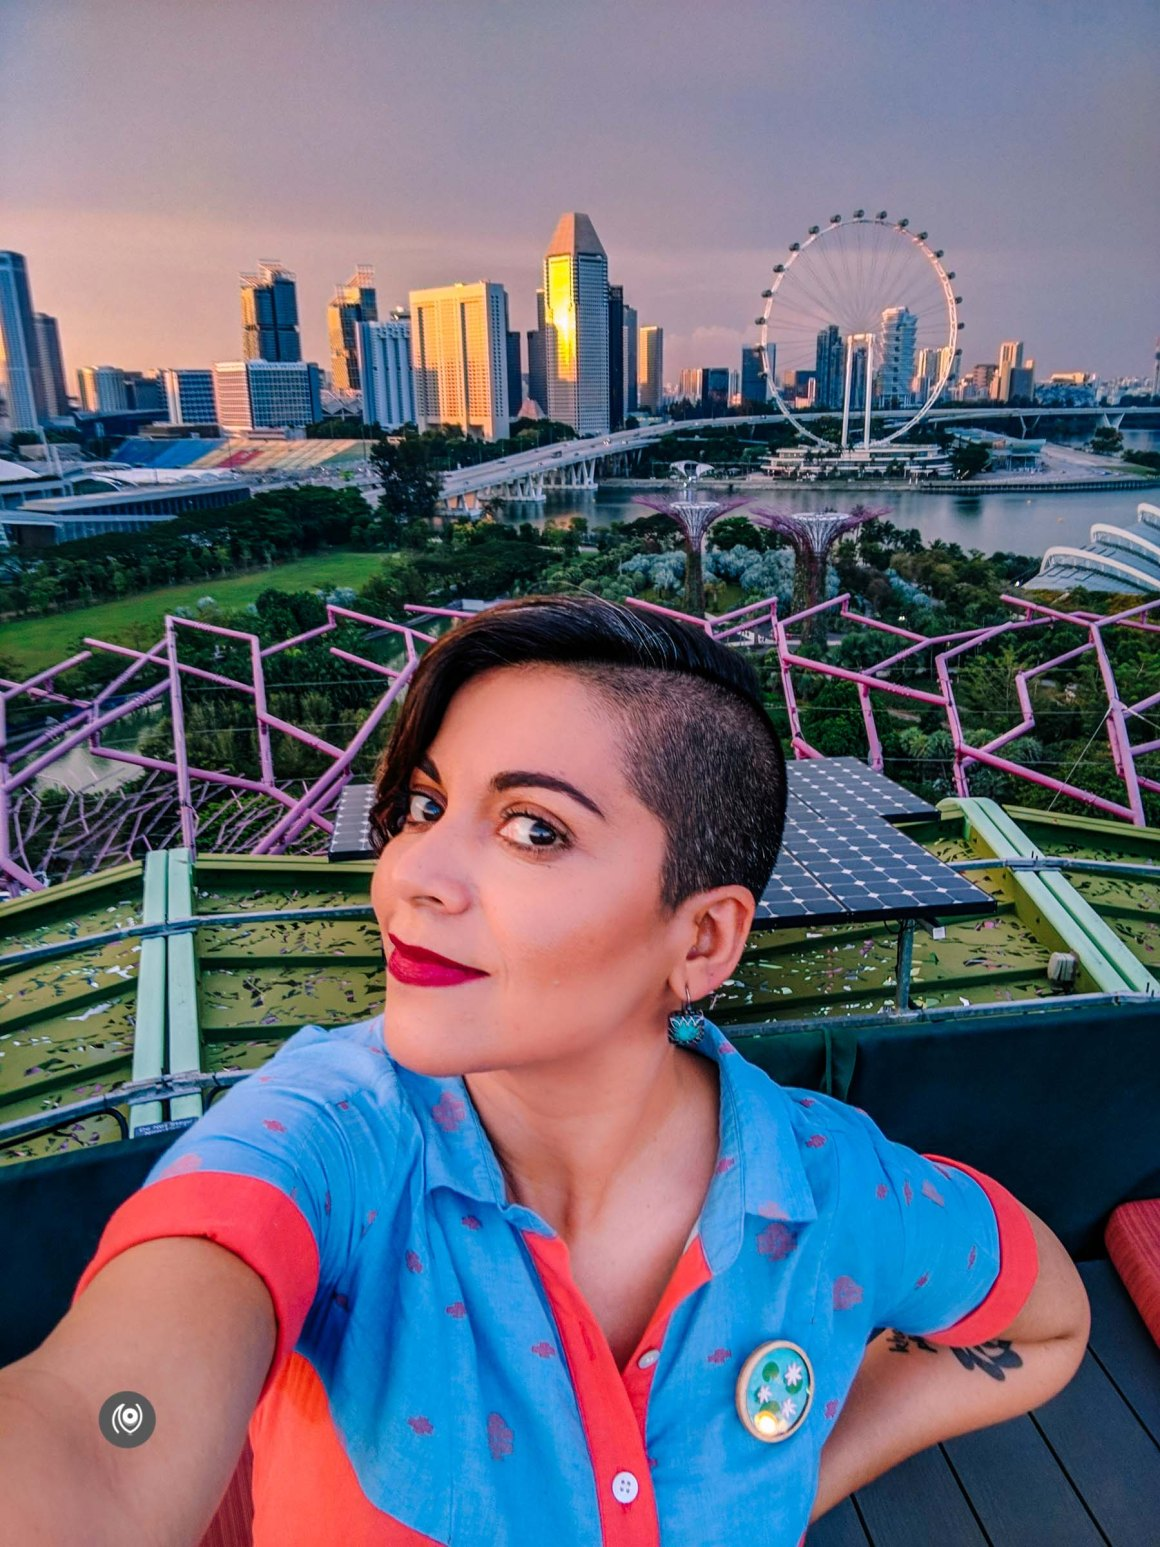 Naina.co, Experience Collector, EyesForSingapore, EyesForDestinations, Singapore, An Evening in Singapore, Marina Bay Sands, EyesForDining, Travel Photographer, Travel Blogger, Travel Influencer India, Travel Photographer India, Travel Blogger India, Travel Influencer, Lifestyle Photographer, Lifestyle Blogger, Lifestyle Influencer, Lifestyle Photographer India, Lifestyle Blogger India, Lifestyle Influencer India, Luxury Photographer, Luxury Blogger, Luxury Influencer, Luxury Photographer India, Luxury Blogger India, Luxury Influencer India, Singapore Tourism, South East Asia, EyesForAsia, The Red Dot, Wine, Dine, Spectacular Views, Photographers Delight, Penhaligons, IndoChine, Night Lights, Travel To Singapore, Naina Redhu